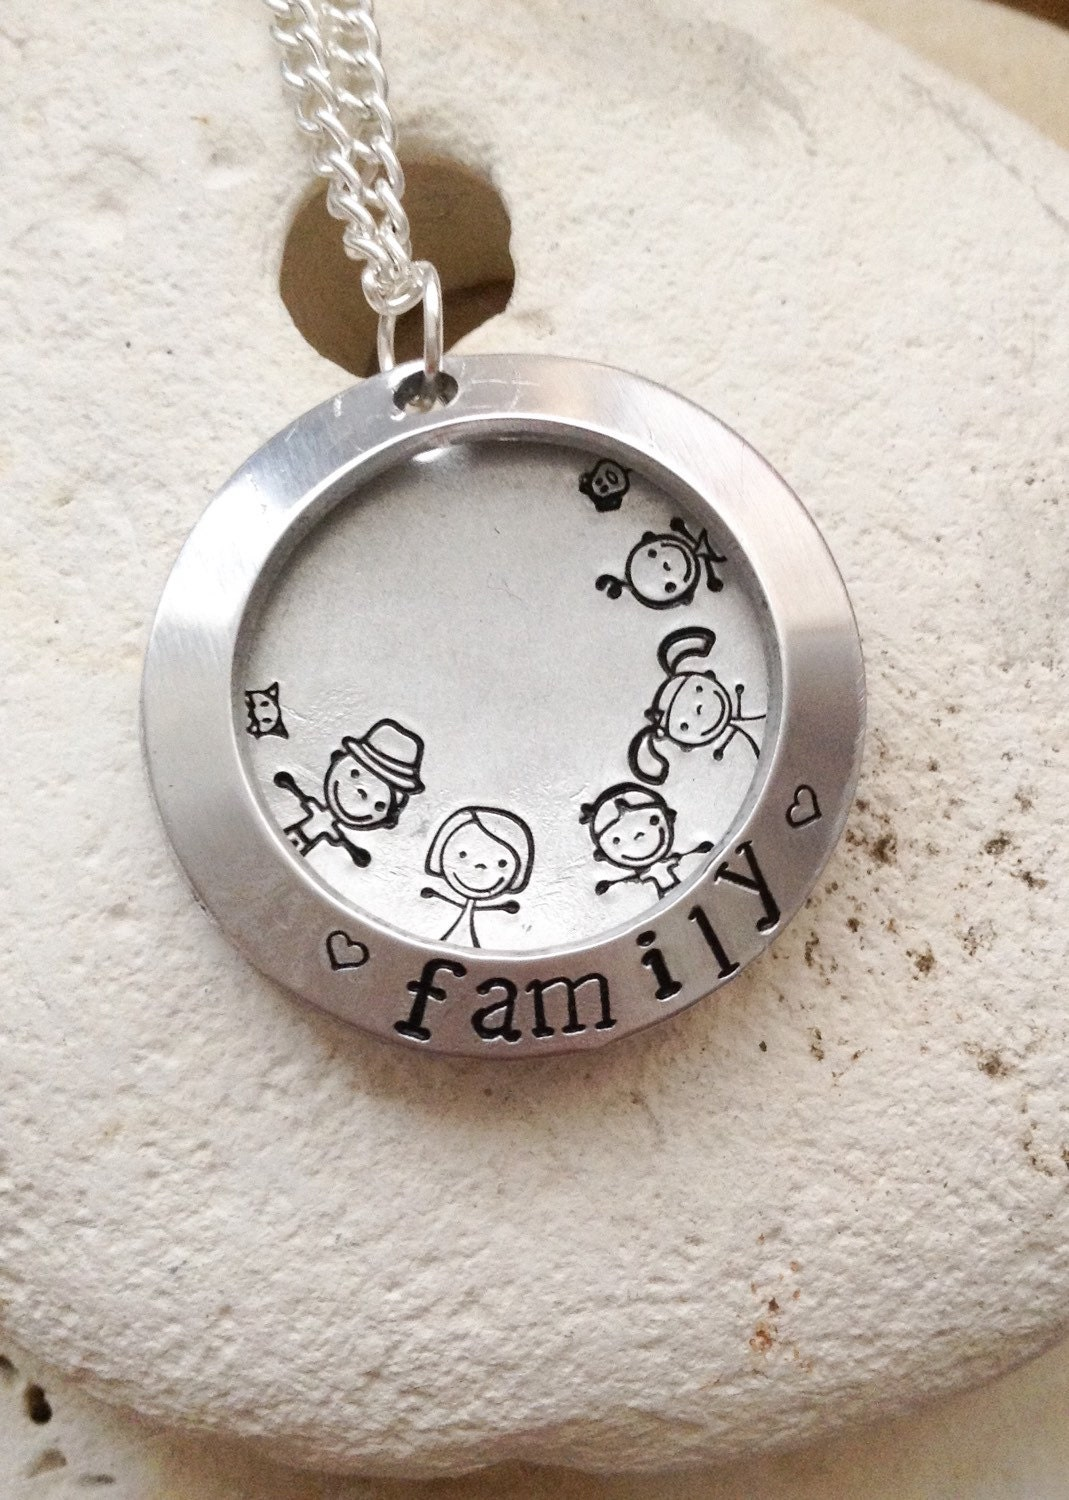 Large Family necklace - open clamshell locket - mum dad daughter son baby dog cat - you choose characters. Gifts for her - 28mm diameter